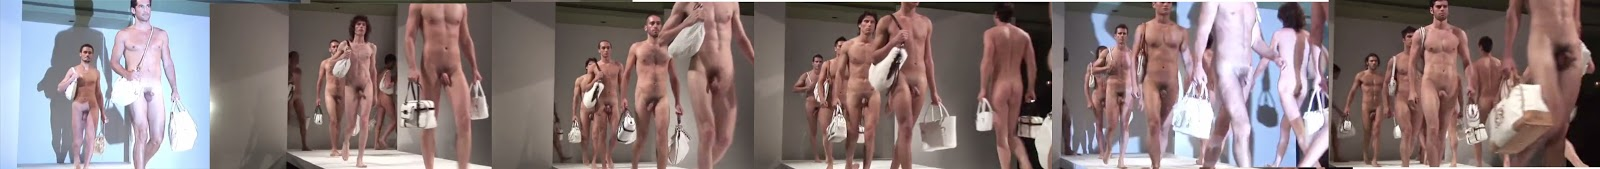 models naked boys butts